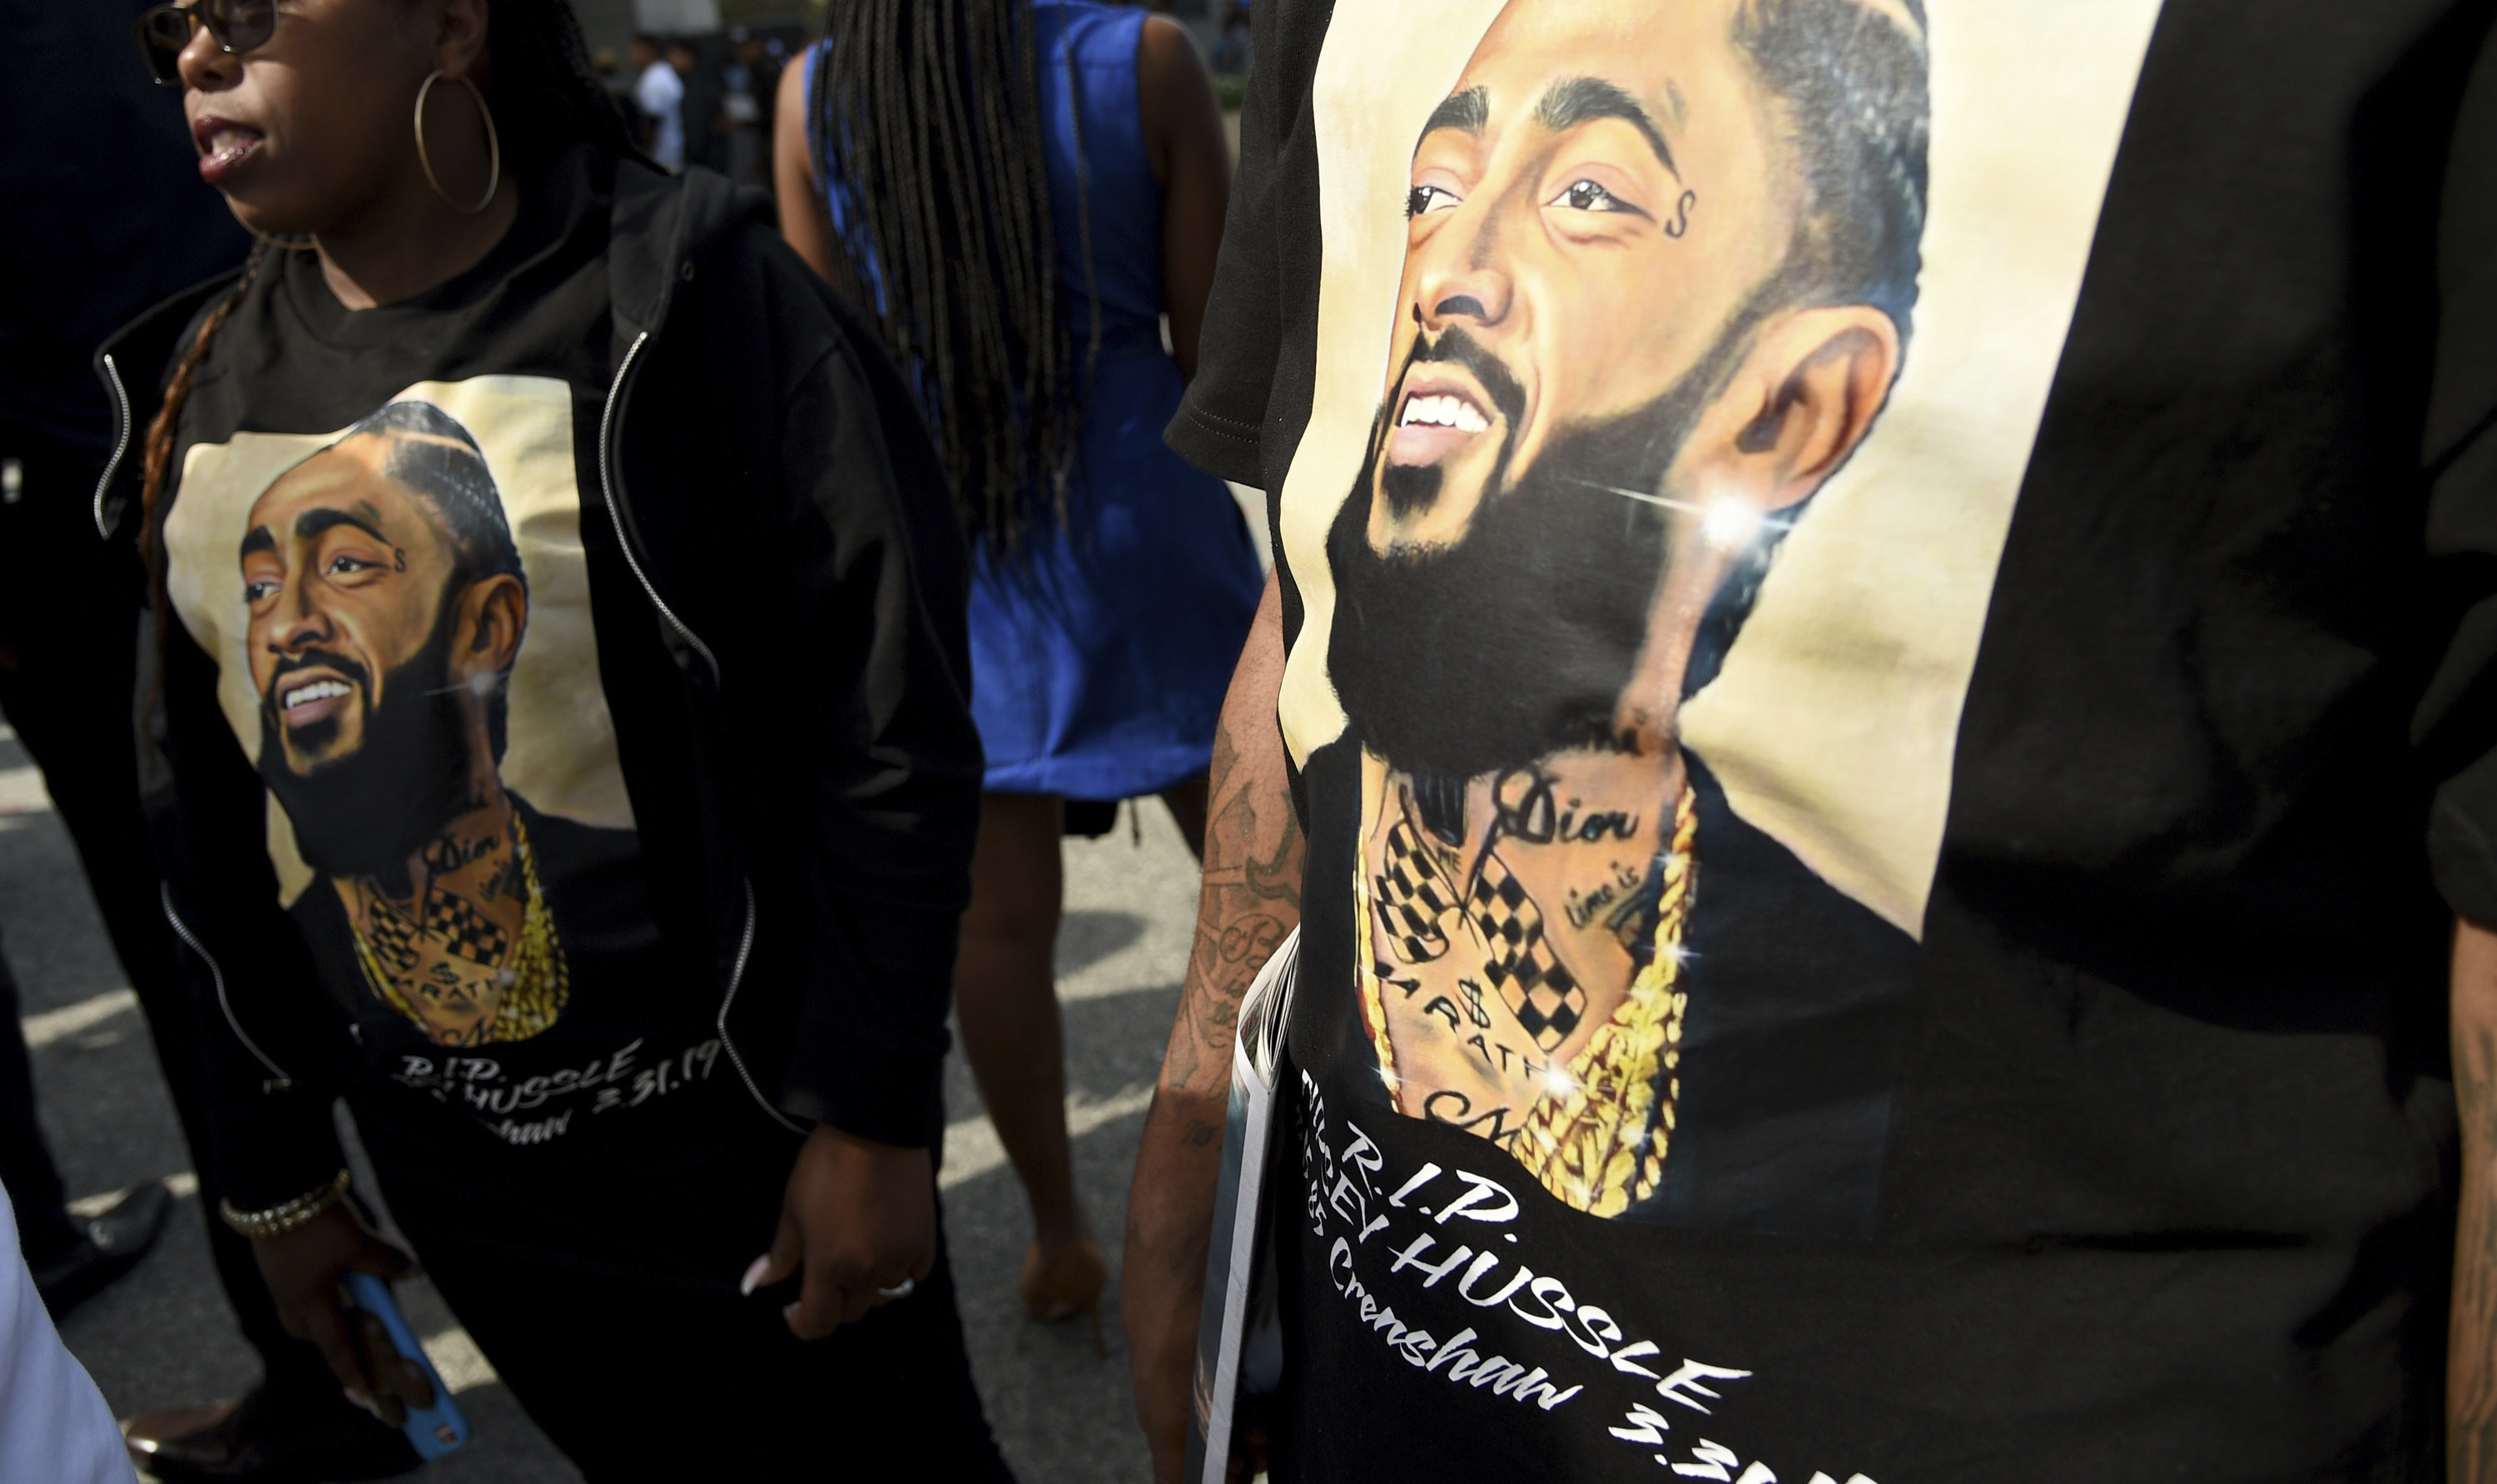 Guests wear t-shirts in tribute to Nipsey Hussle, whose given name was Ermias Asghedom, at the late rapper's Celebration of L